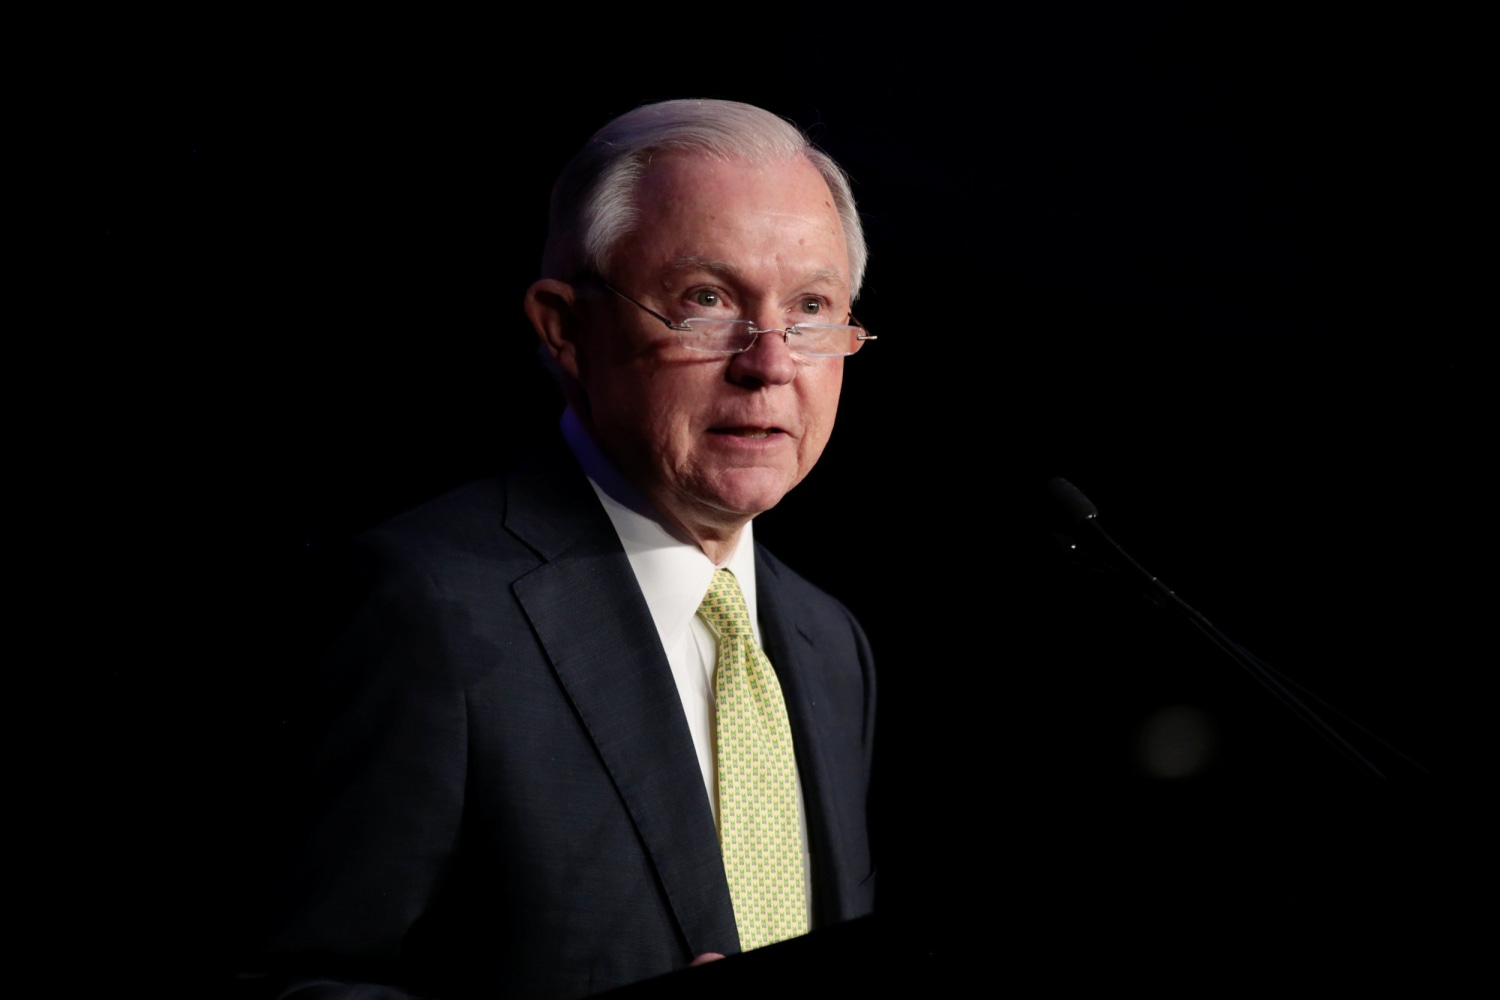 Image U S Attorney General Jeff Sessions Addresses The National Law Enforcement Conference On Human Exploitation